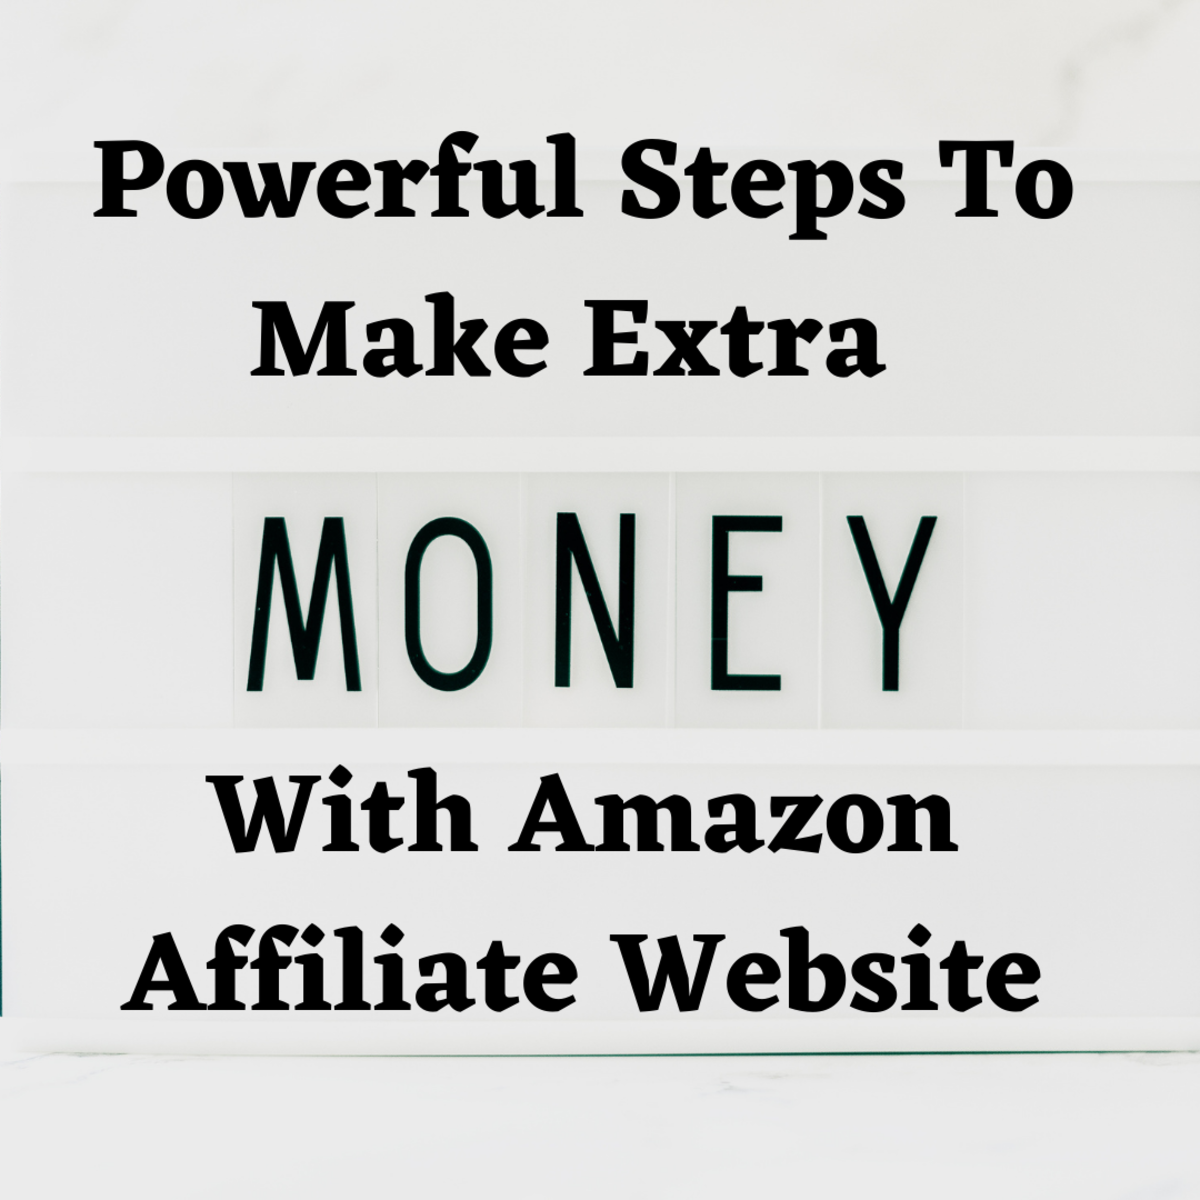 Powerful Steps To Make Extra Money With Amazon Affiliate Website